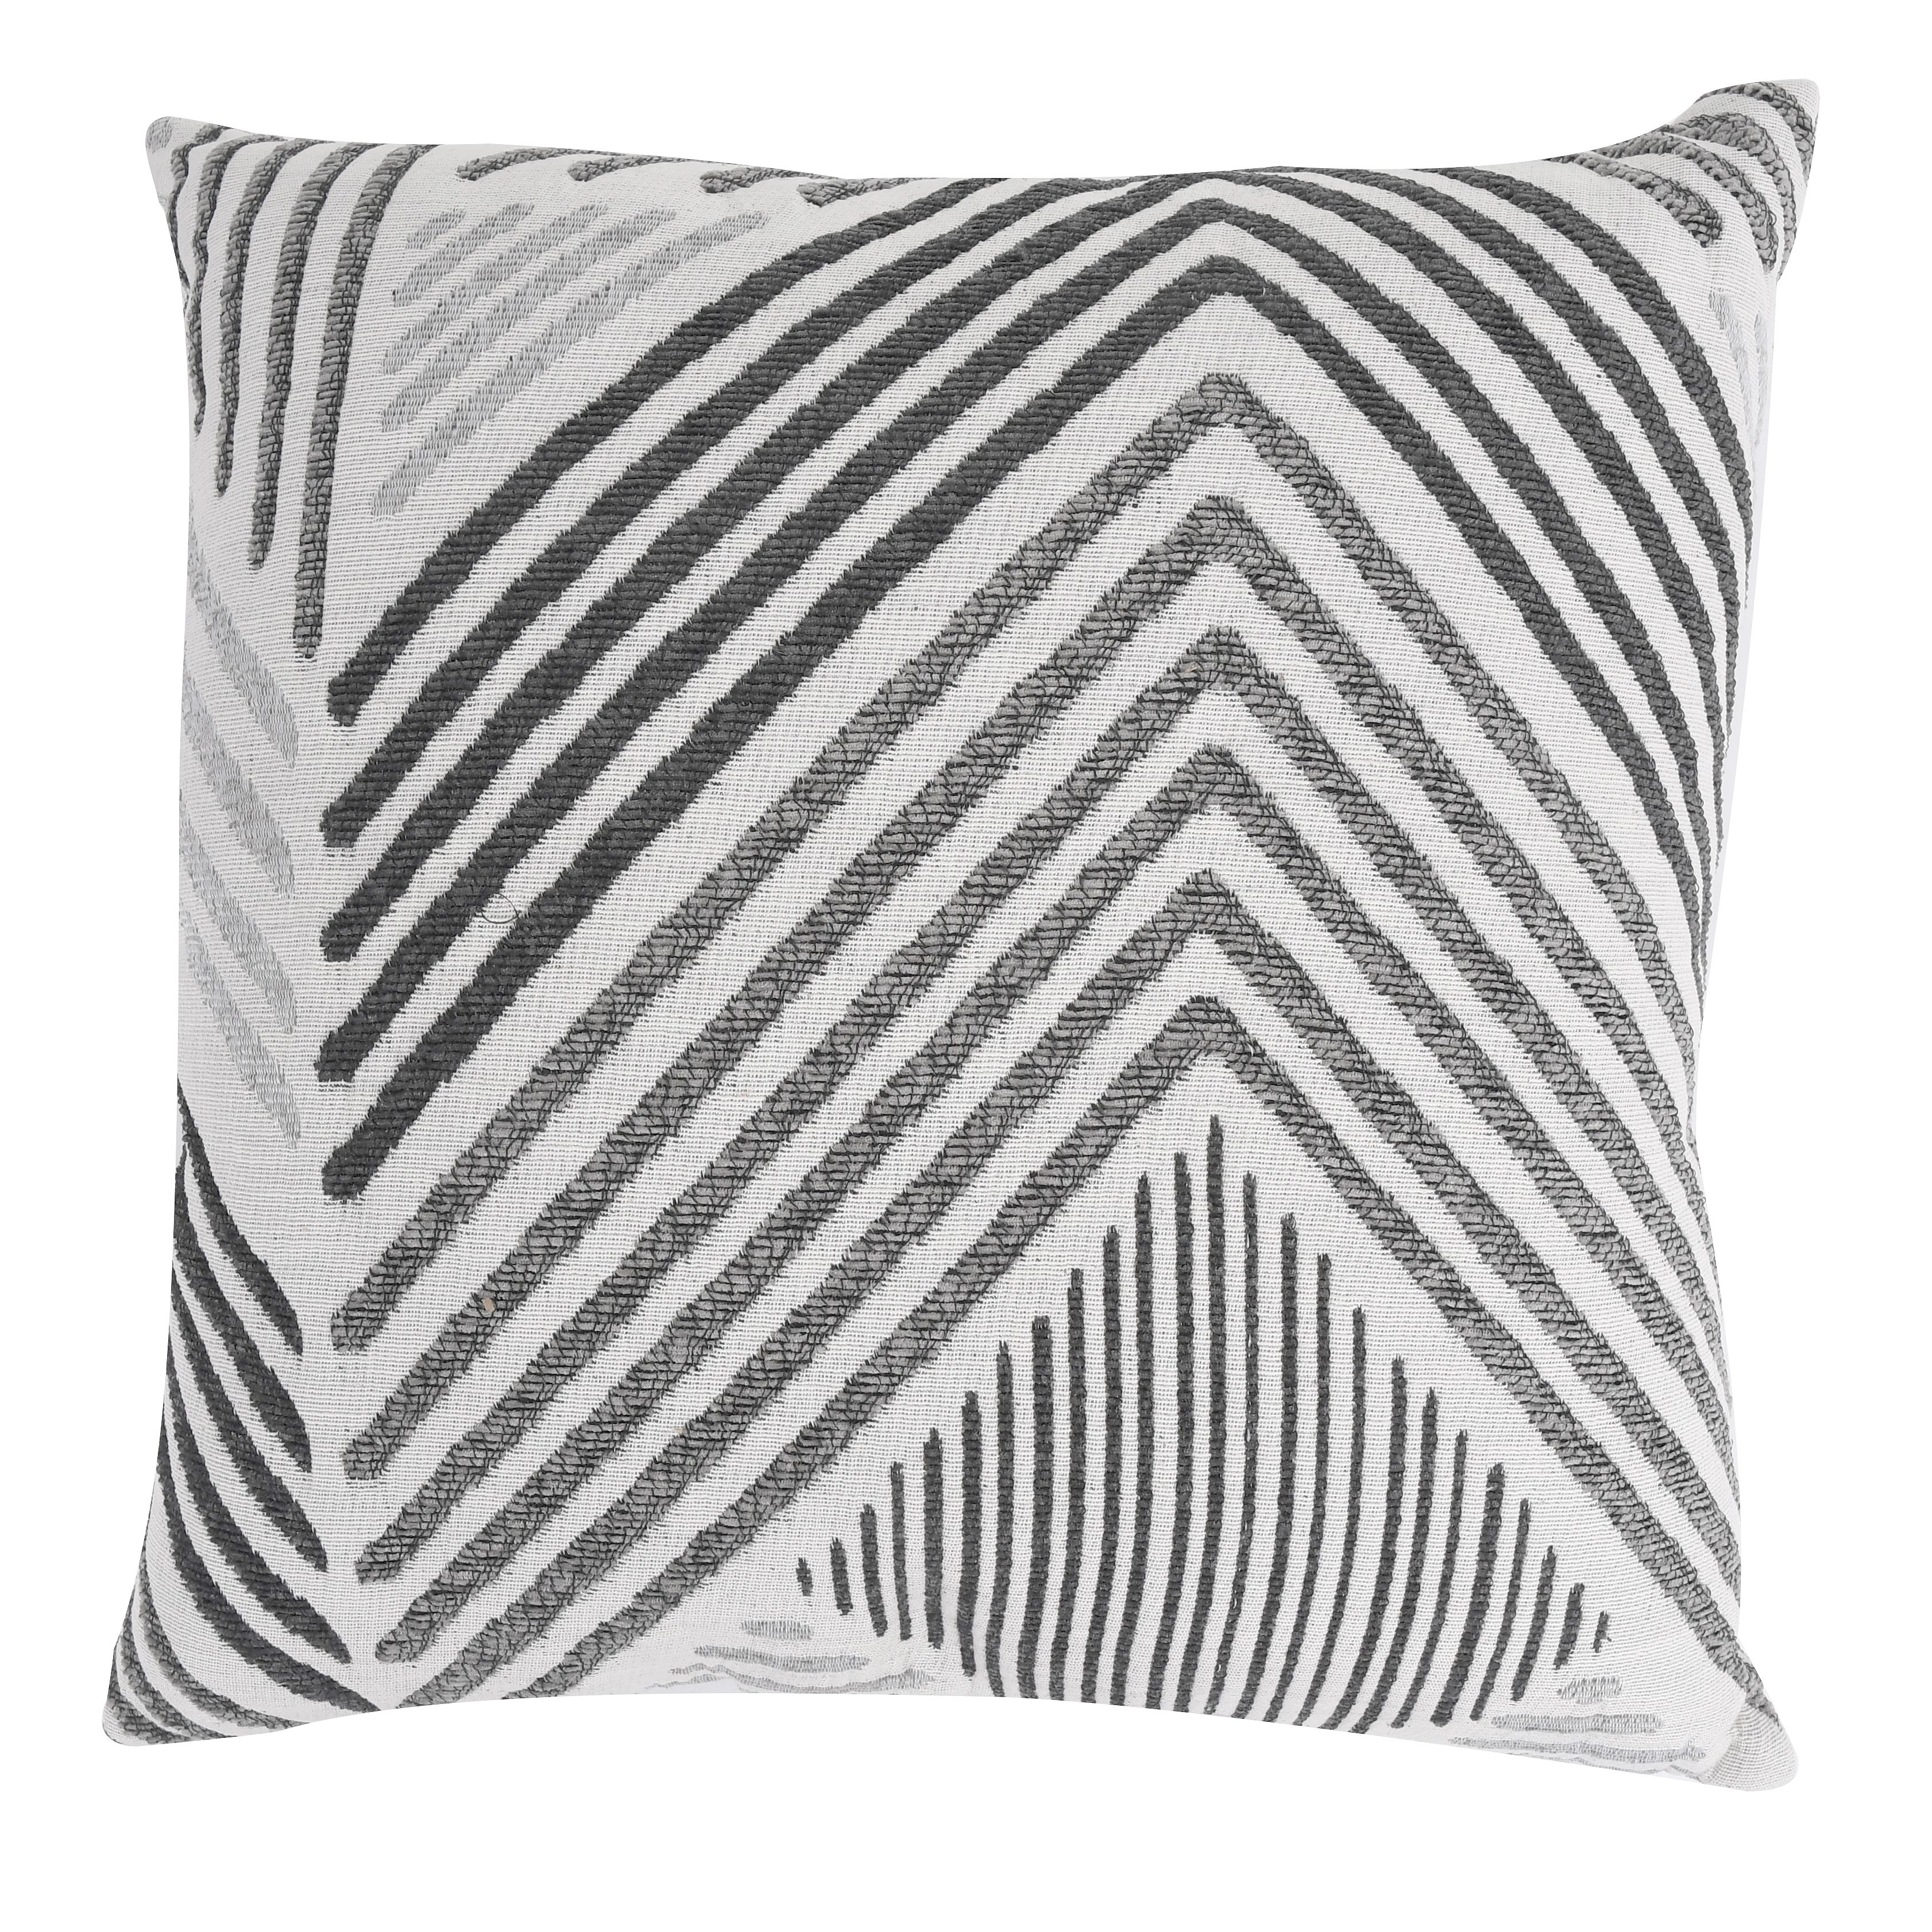 bd9d118fa063f0ee09b2921668746575 - Better Homes And Gardens Aztec Cream Decorative Pillow